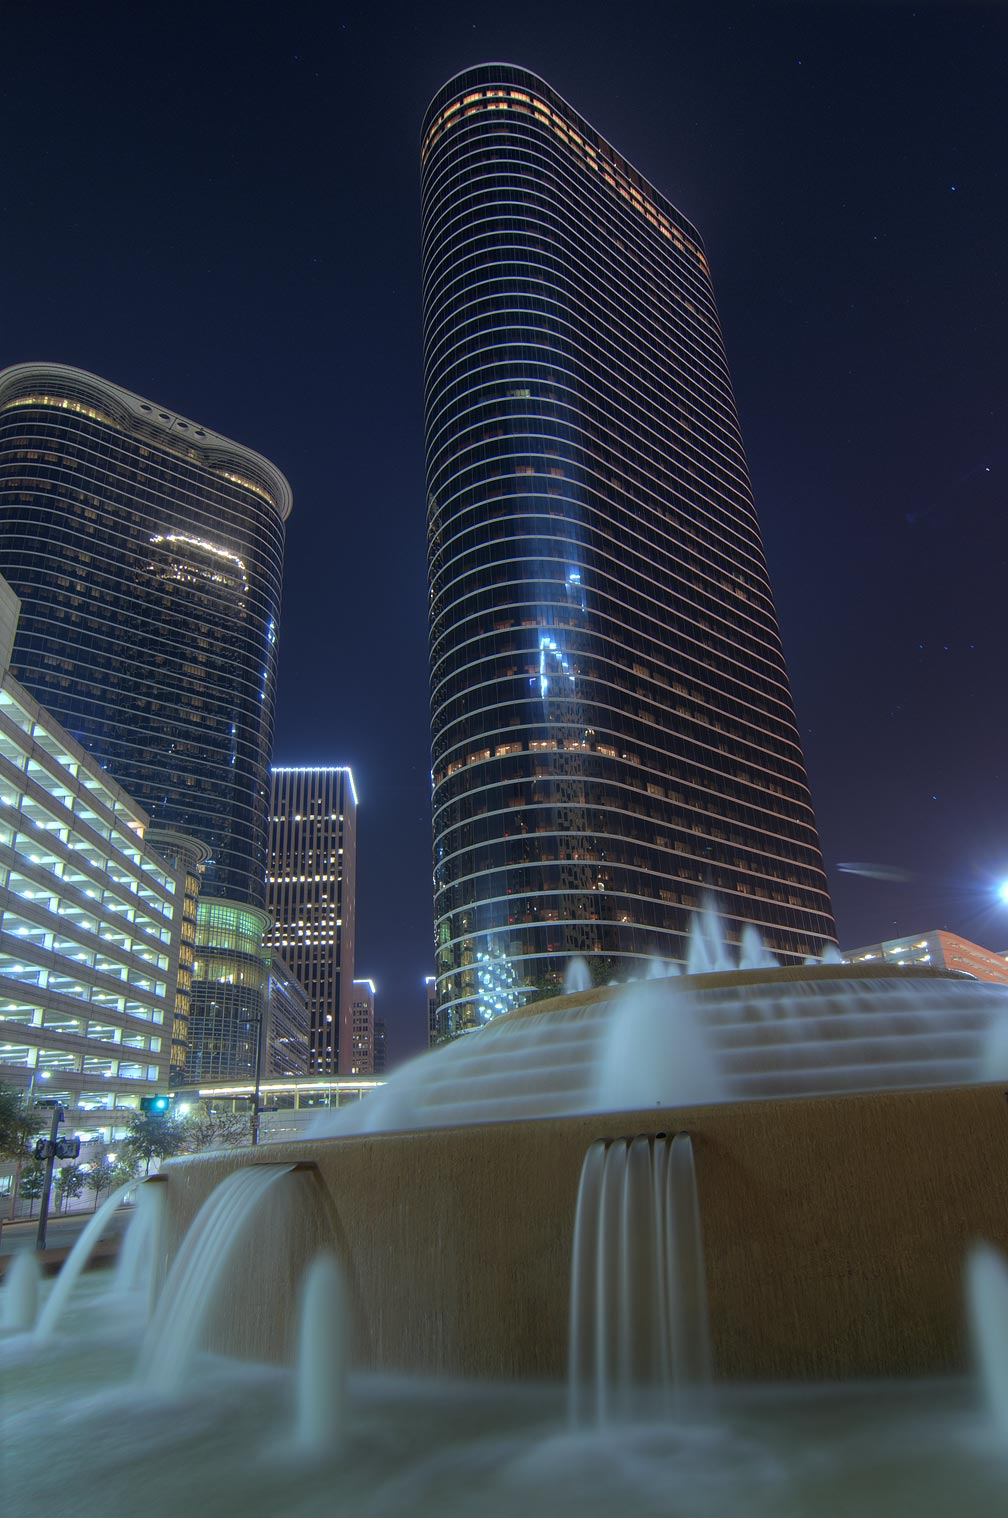 Washington-on-the-Brazos-Houston, Texas  - Fountain in downtown Houston. Texas